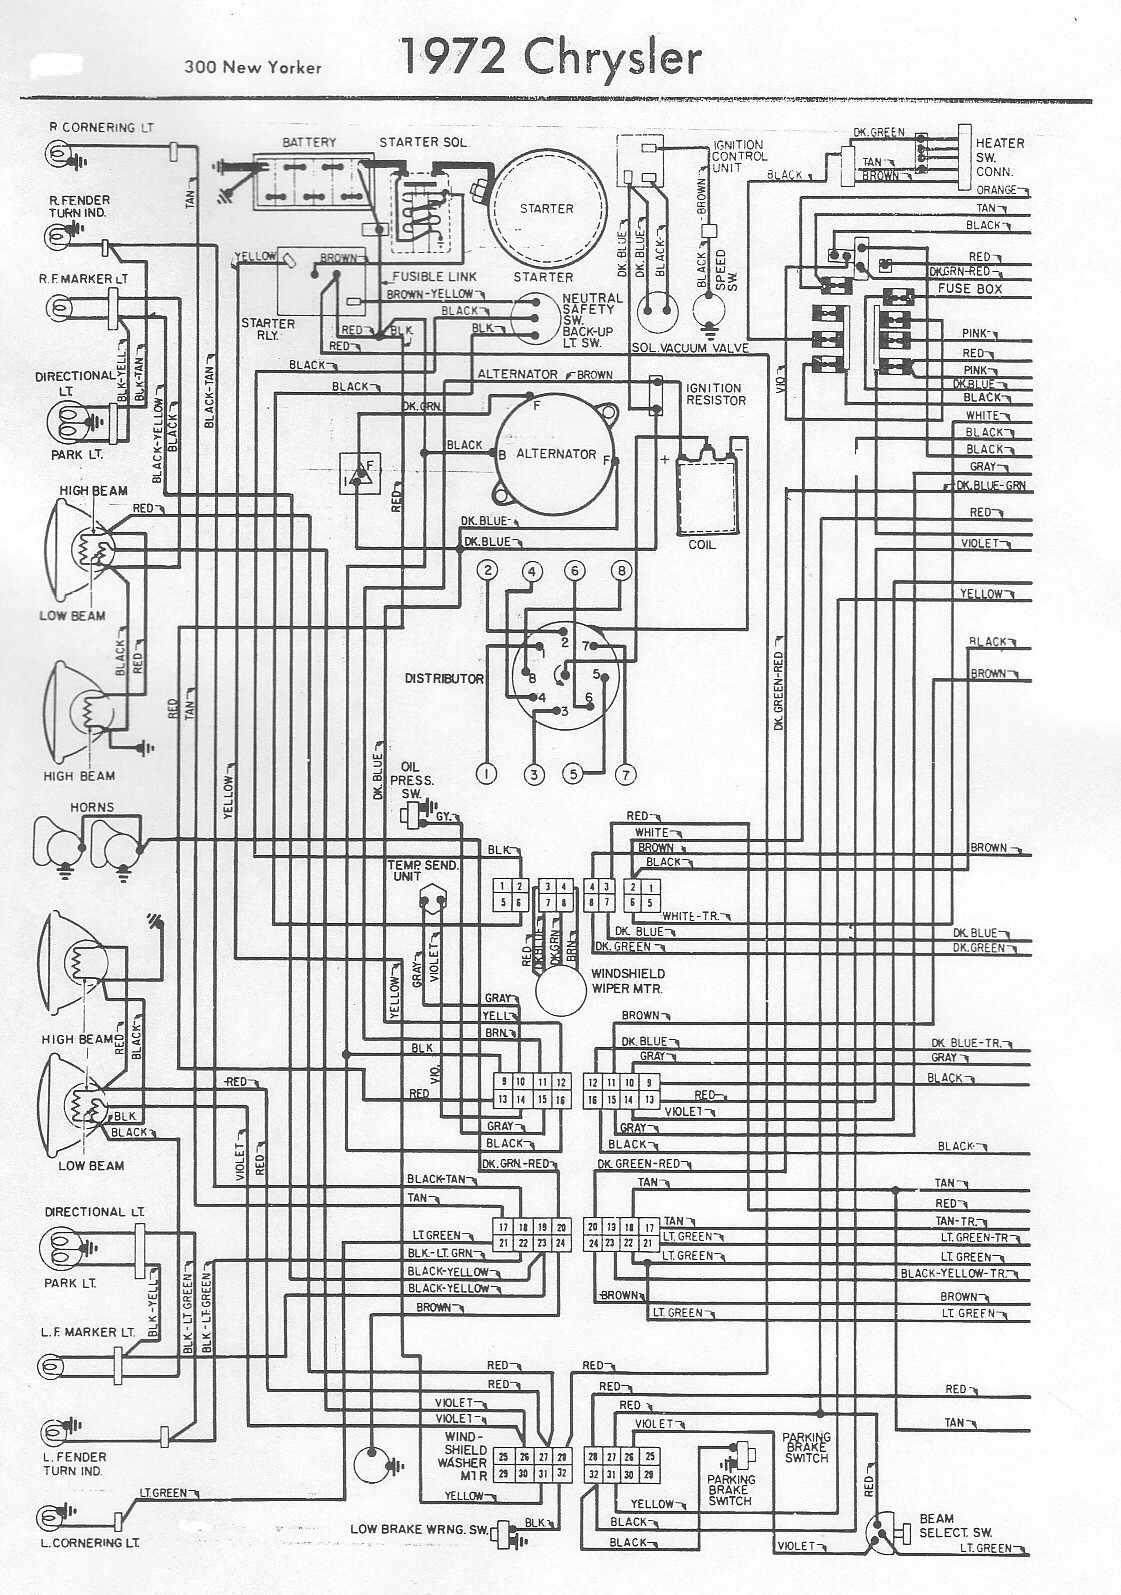 automotive wiring diagram free download schematics wiring diagrams u2022 rh theanecdote co Wiring Schematic Symbols Simple Wiring Schematics